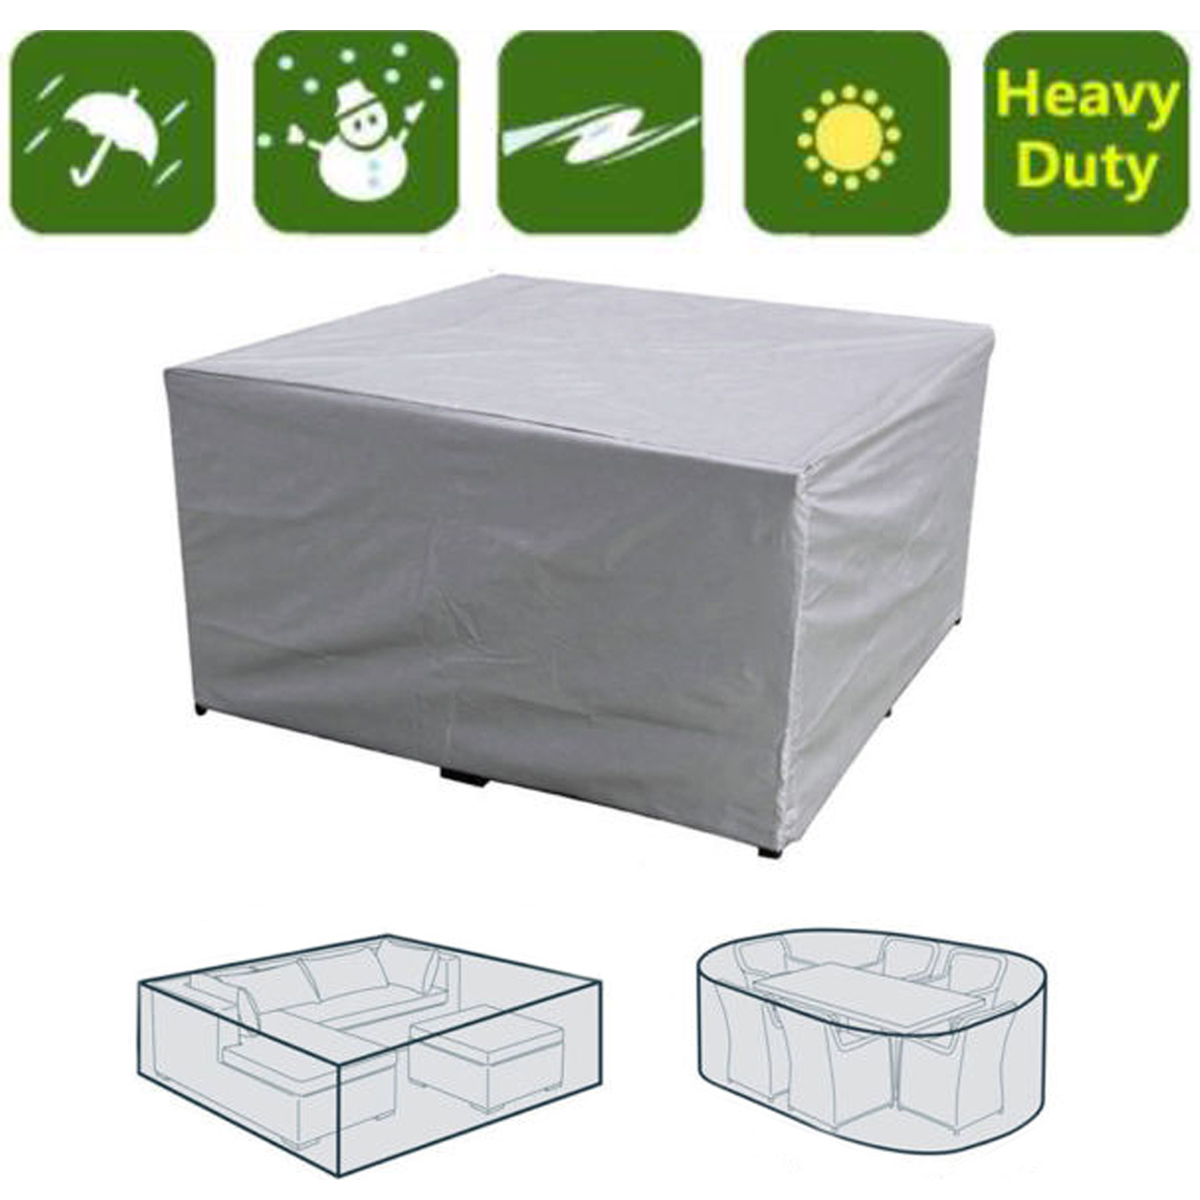 7 Sizes Waterproof Furniture Cover Outdoor Cover Sofa Chair Table Cover Garden Patio Beach Protector Rain Snow Dustproof